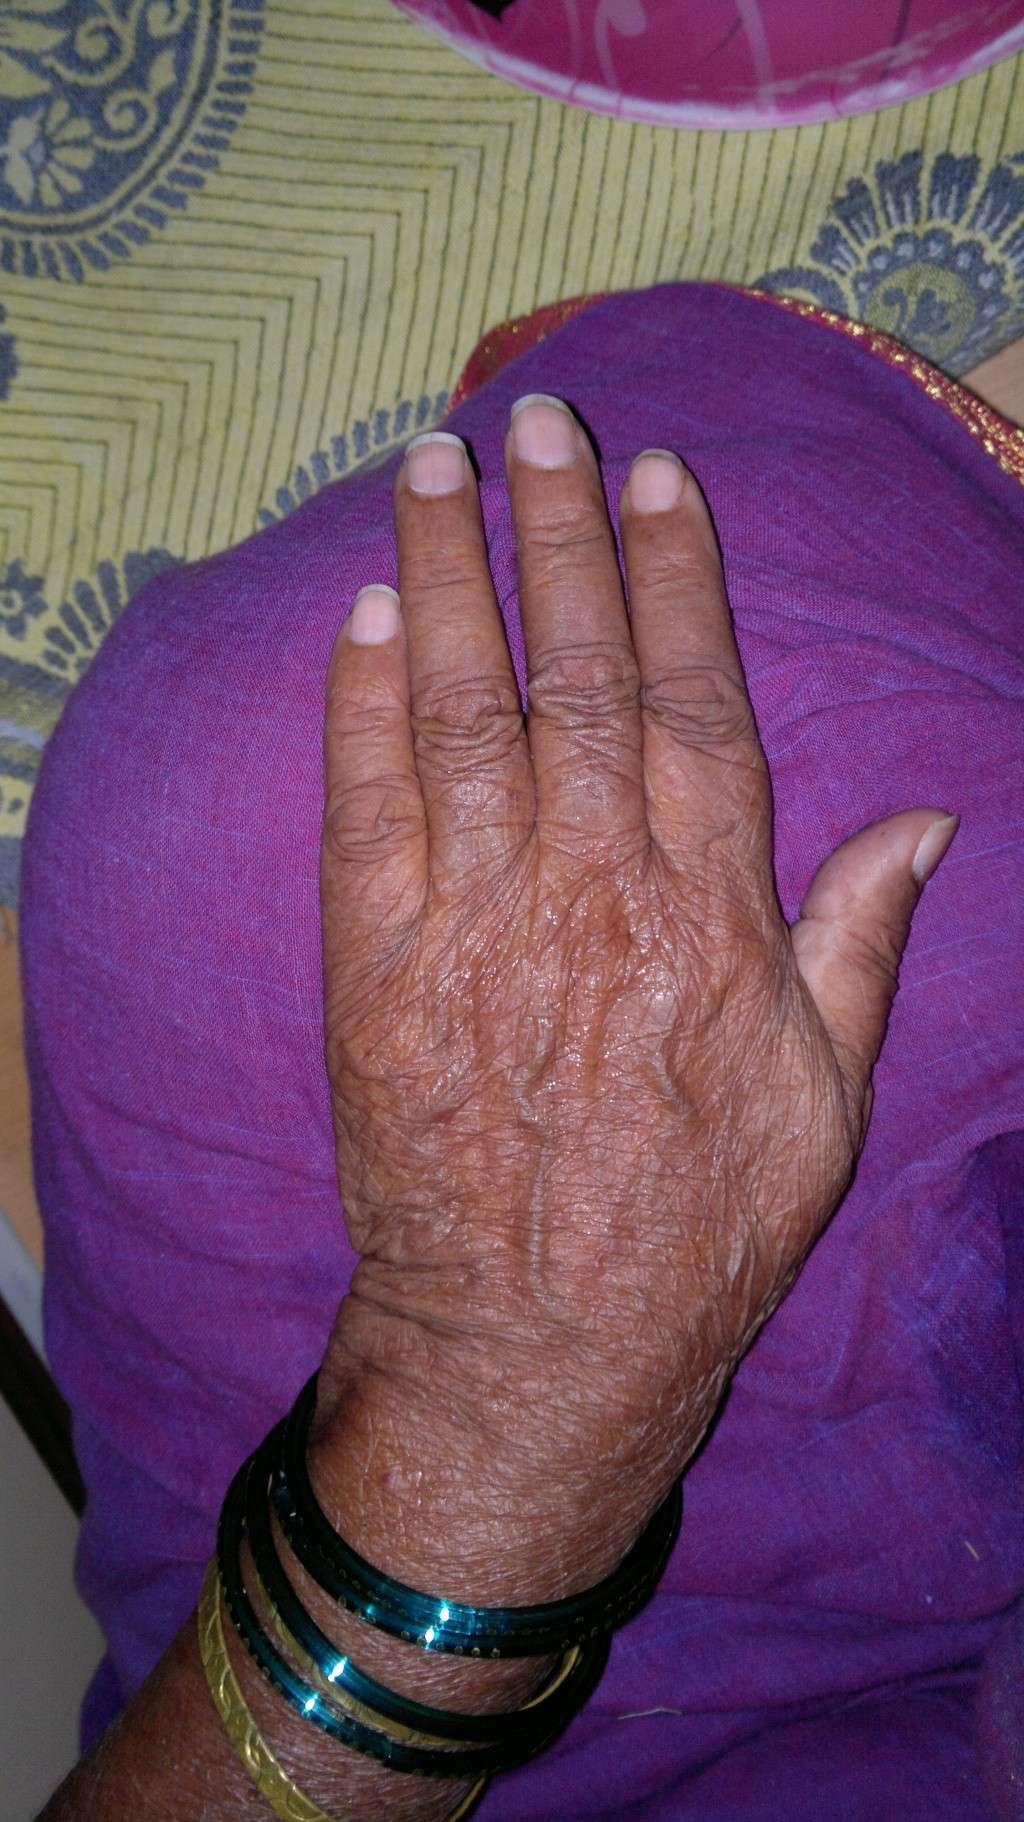 The Hands of Alzheimer's Patient 08042017